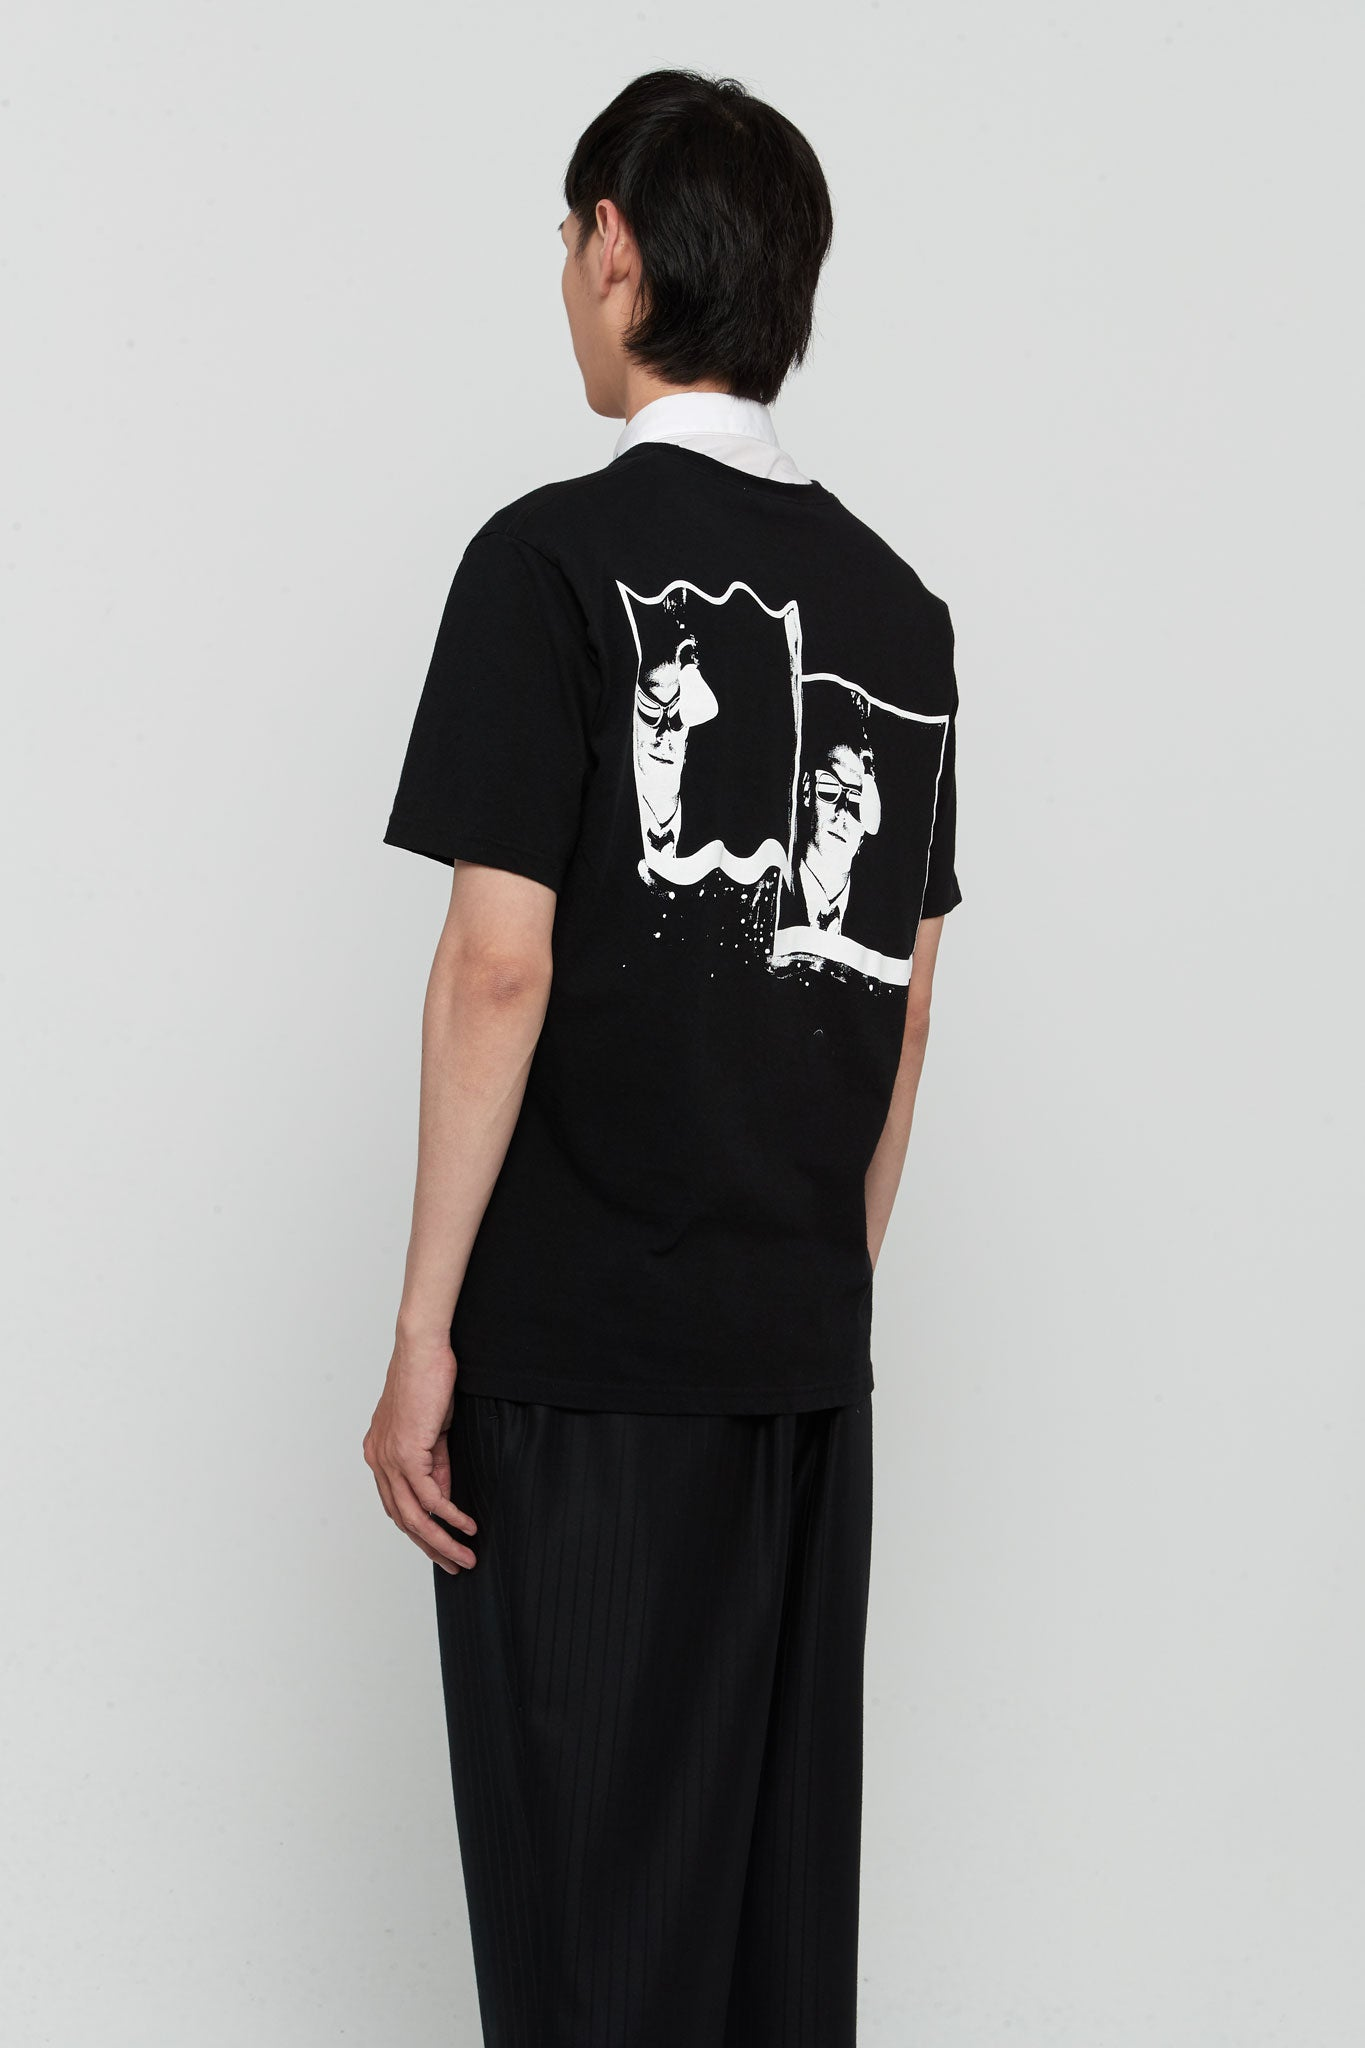 Graphic Printed Tee Black Twisted face